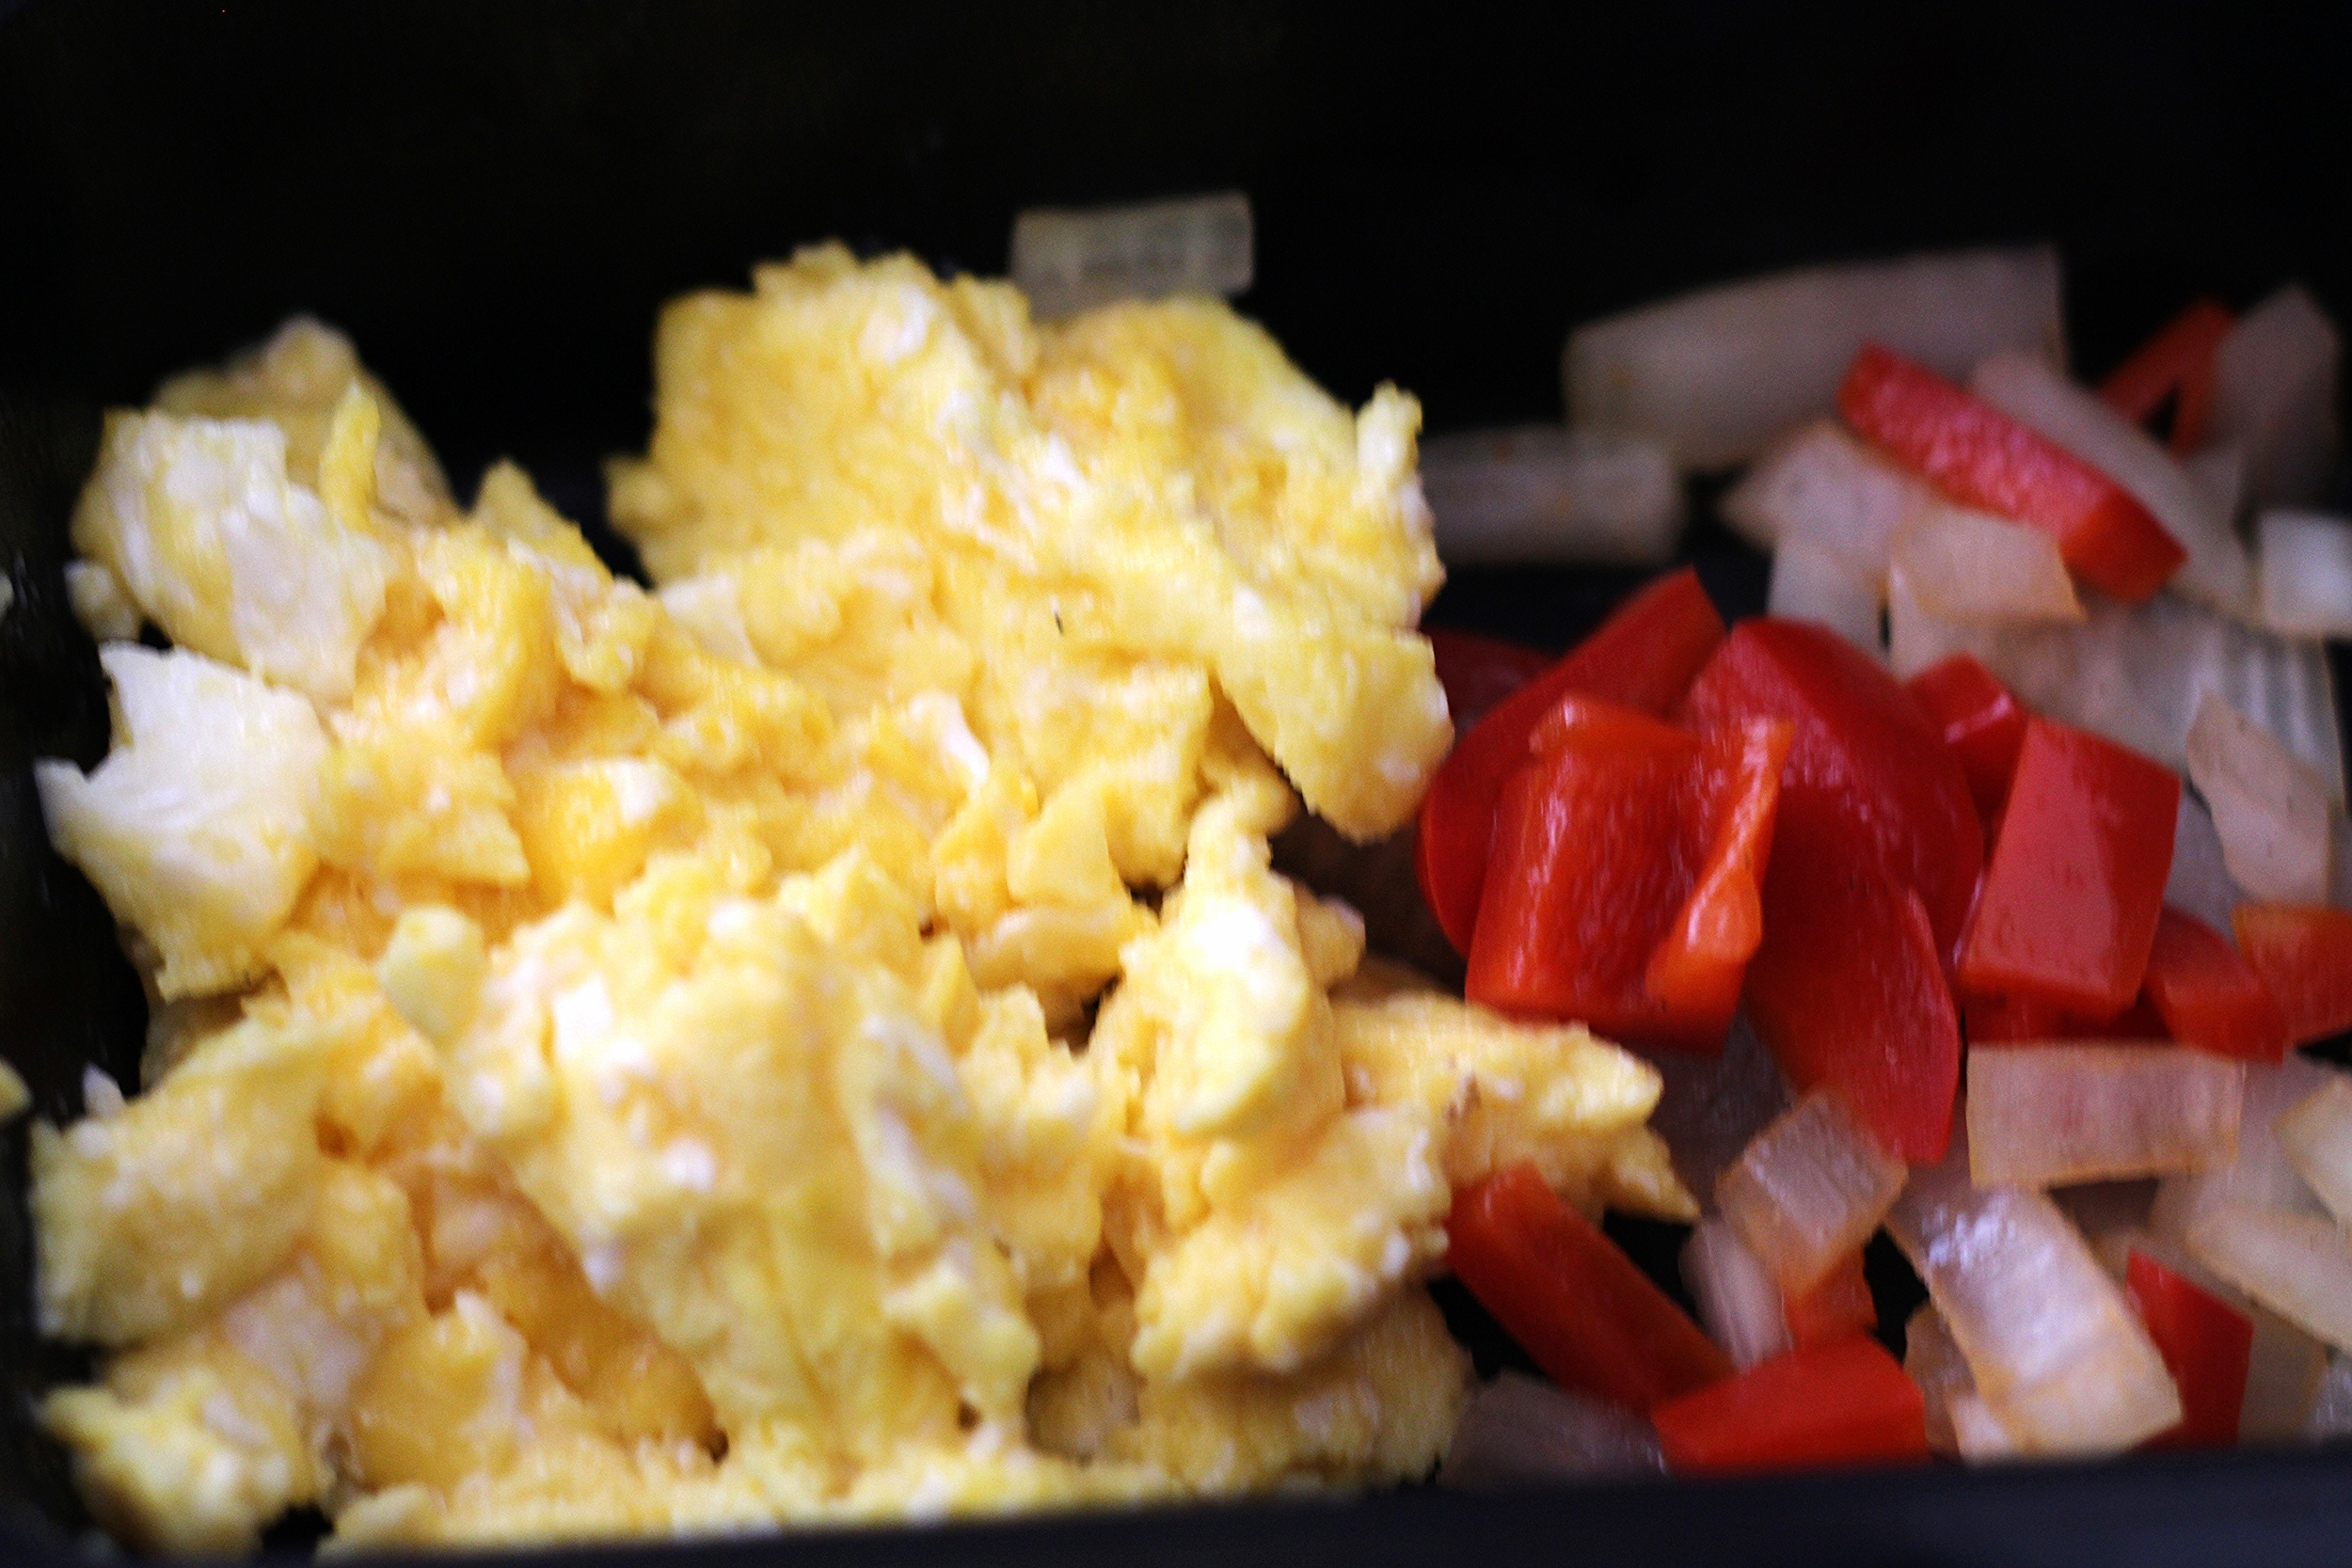 Bfast: Scrambled eggs, peppers, onions sautéed in olive oil!